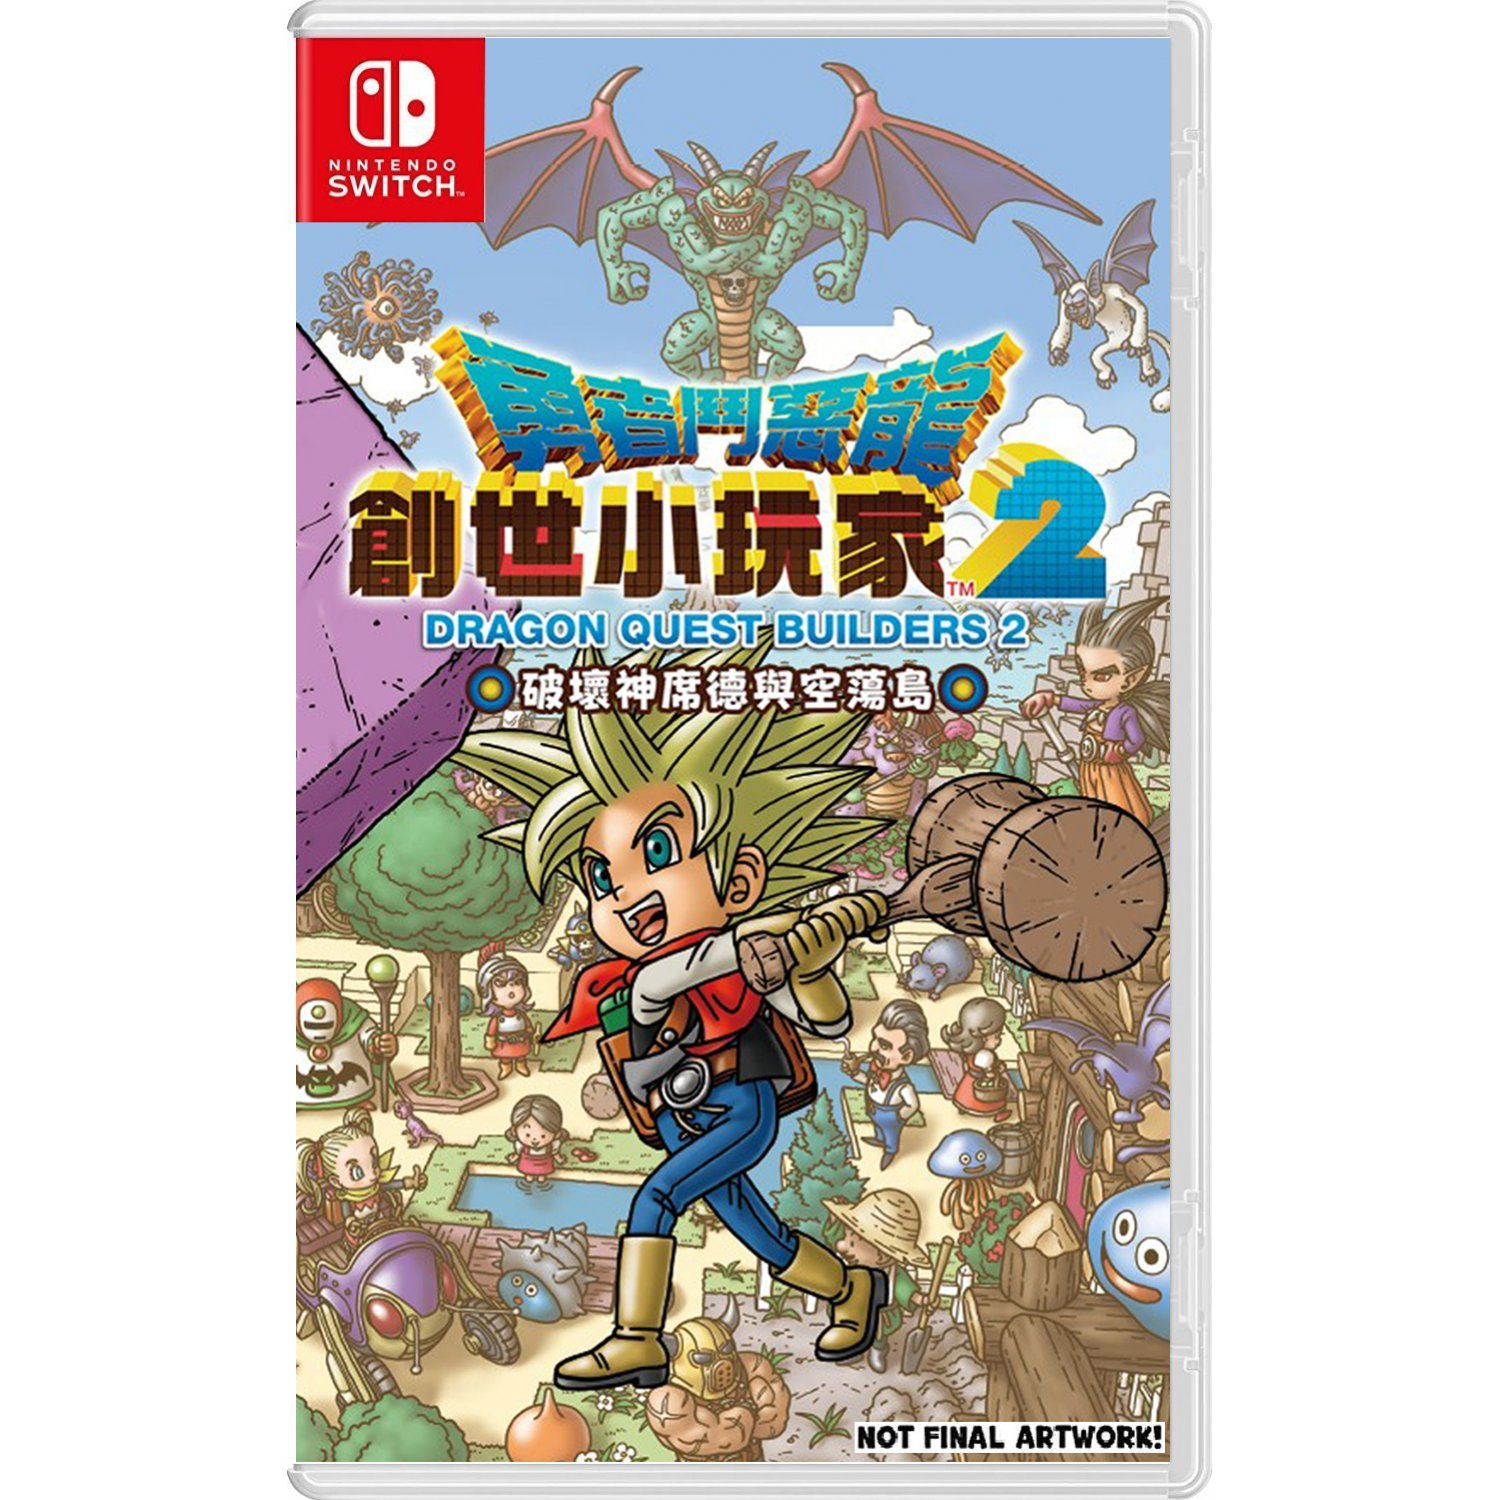 dragon-quest-builders-2-chinese-subs-595857.24.jpg